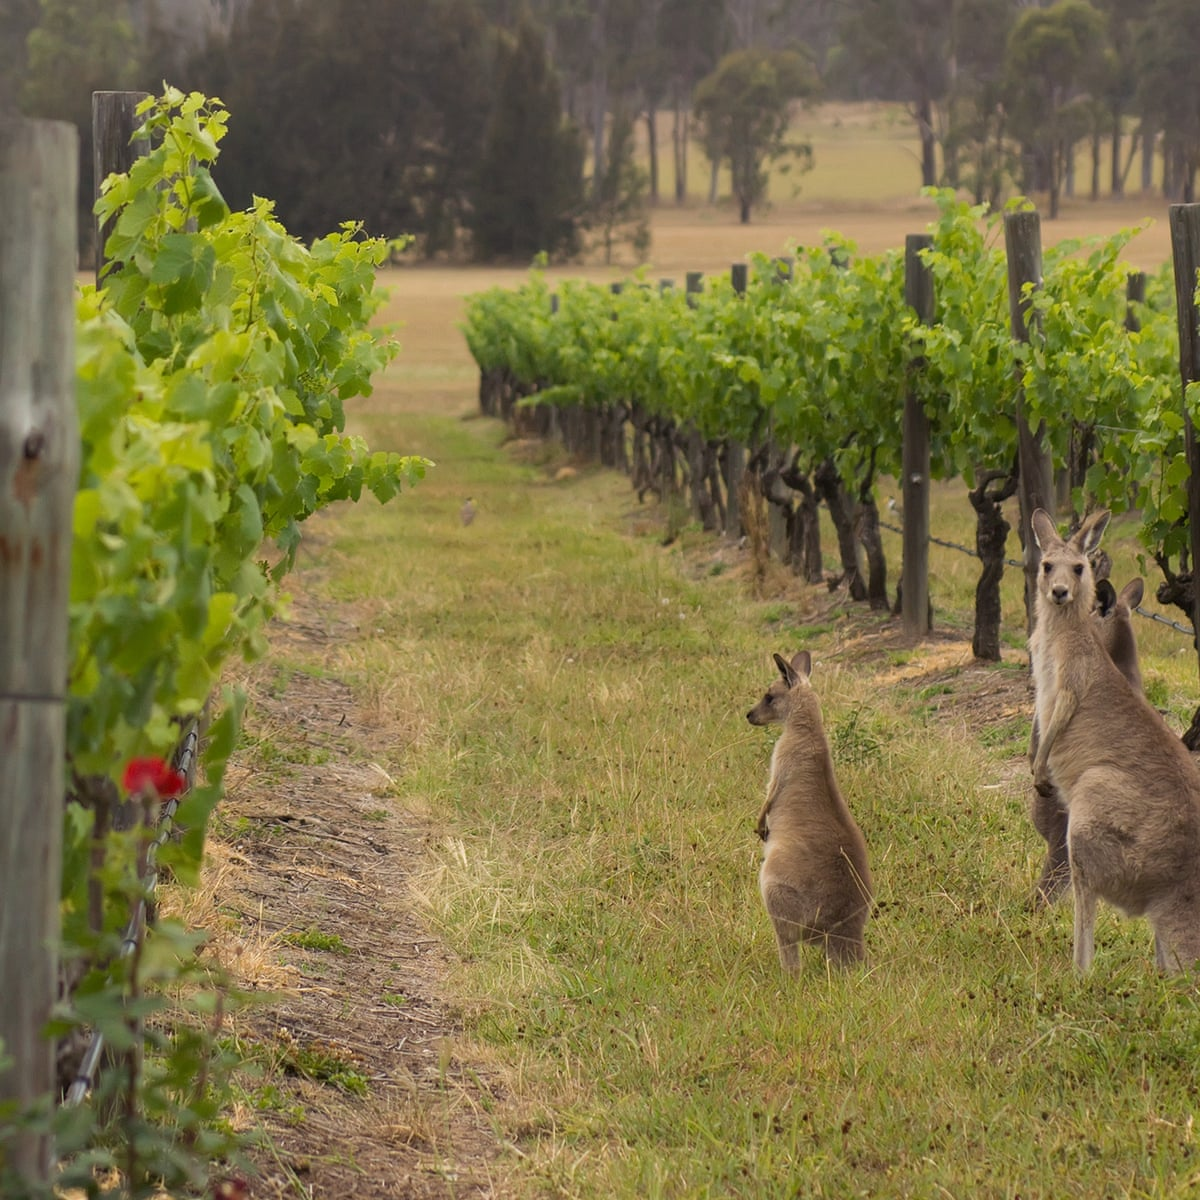 Wine Australia is launching a new global 24/7 virtual platform